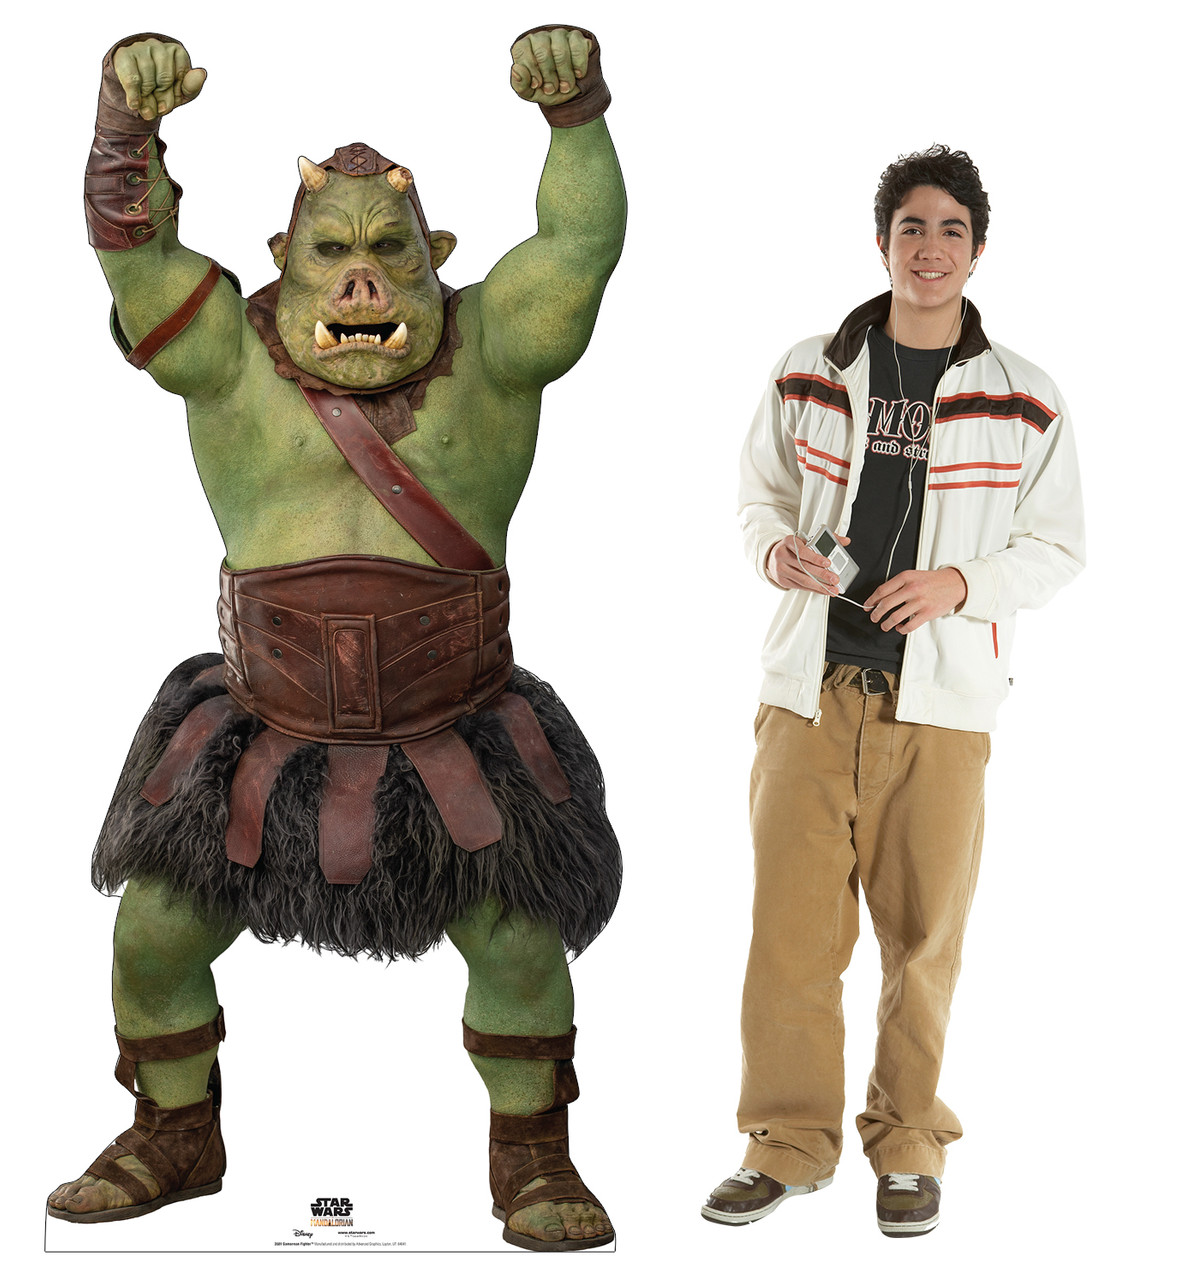 Life-size cardboard standee of a Gamorrean Fighter from the Mandalorian season 2 with model.